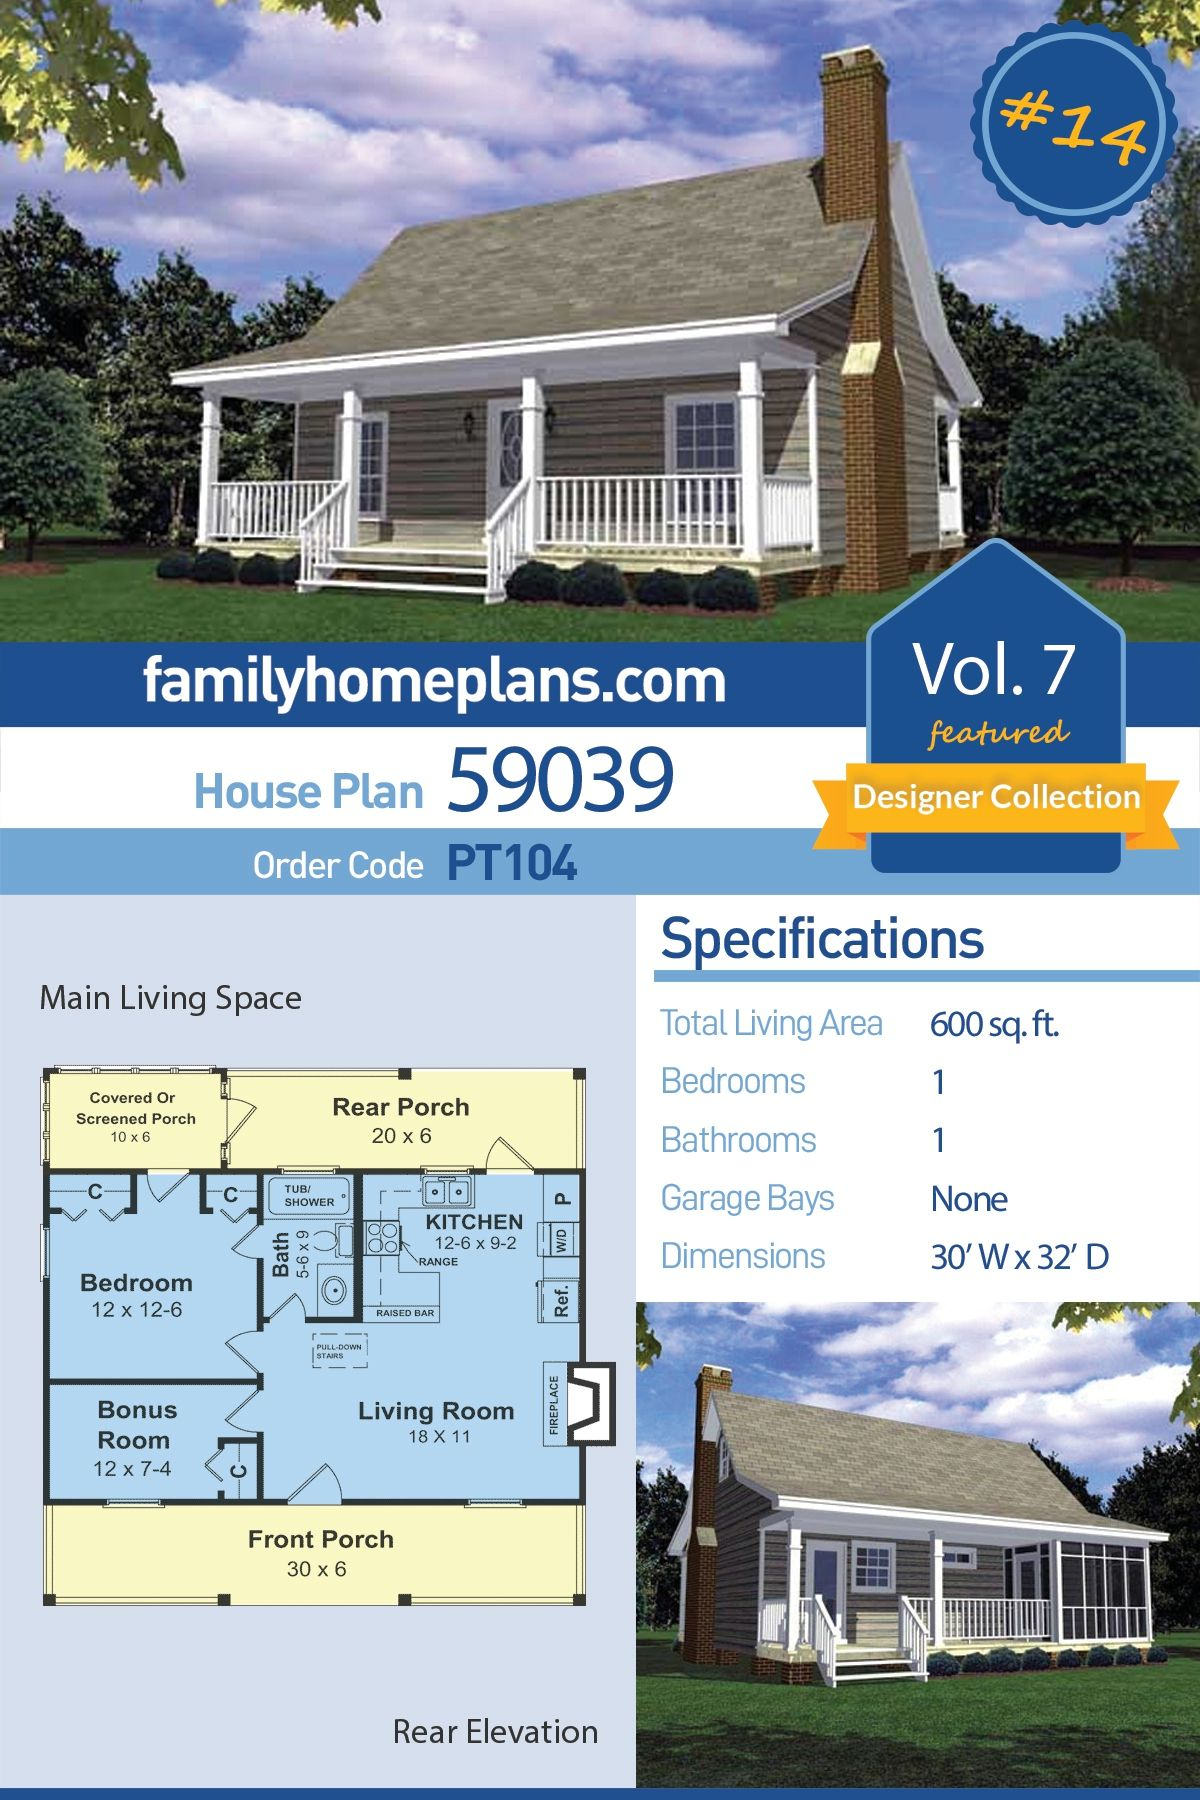 Cabin Style House Plan 1 Beds 1 Baths 600 Sq Ft Plan 21 108 Small House Floor Plans House Floor Plans Cabin Floor Plans